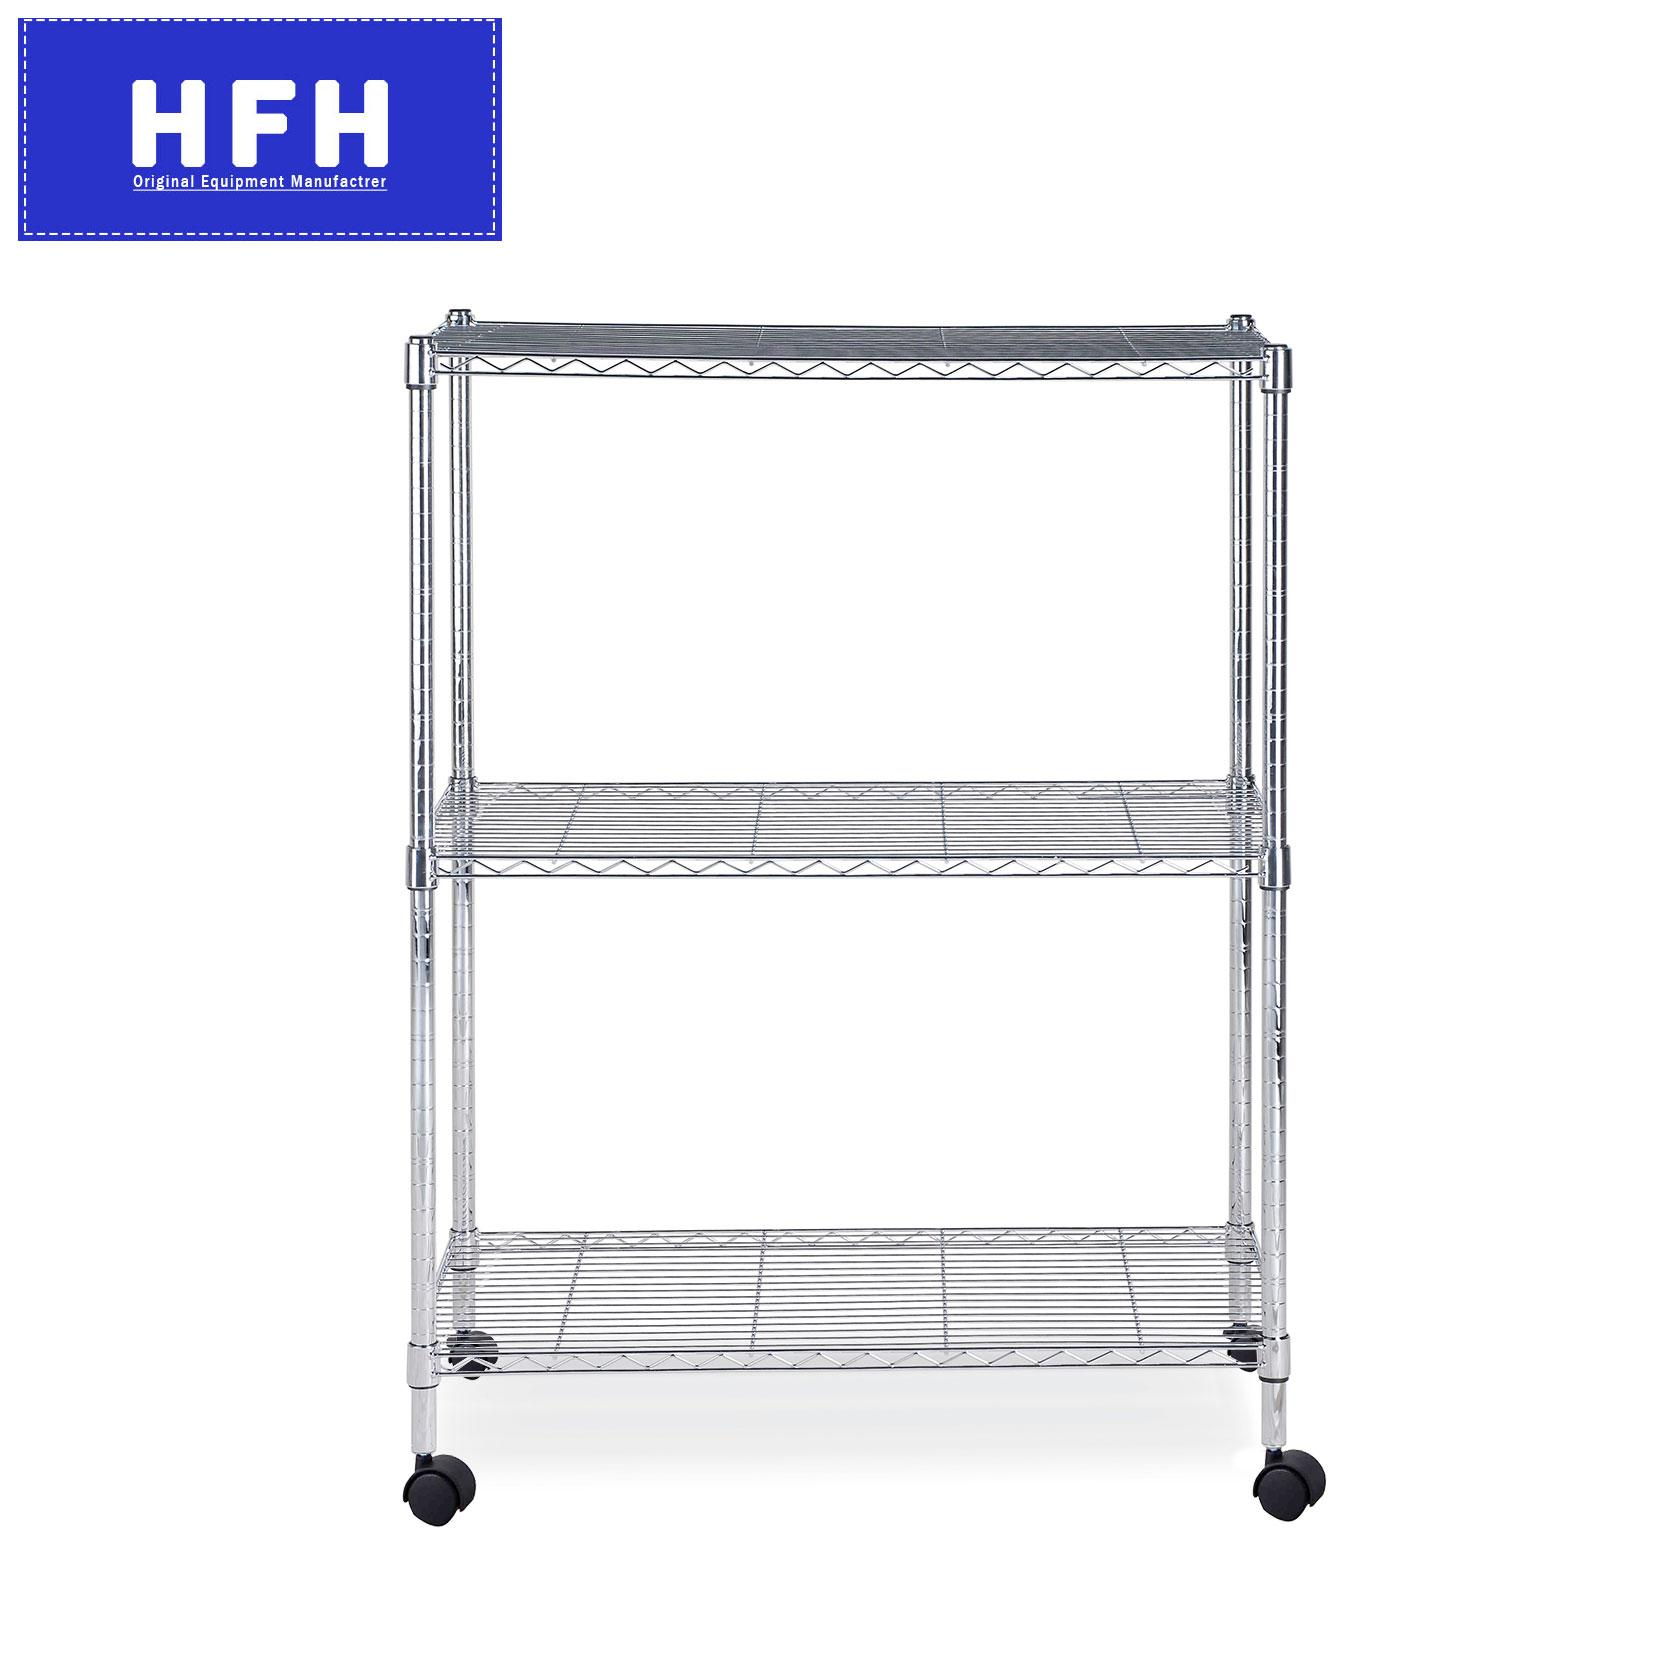 Toyogo DIY Wire Chrome Rack with Wheels (3 Tier)(HFH6852E)